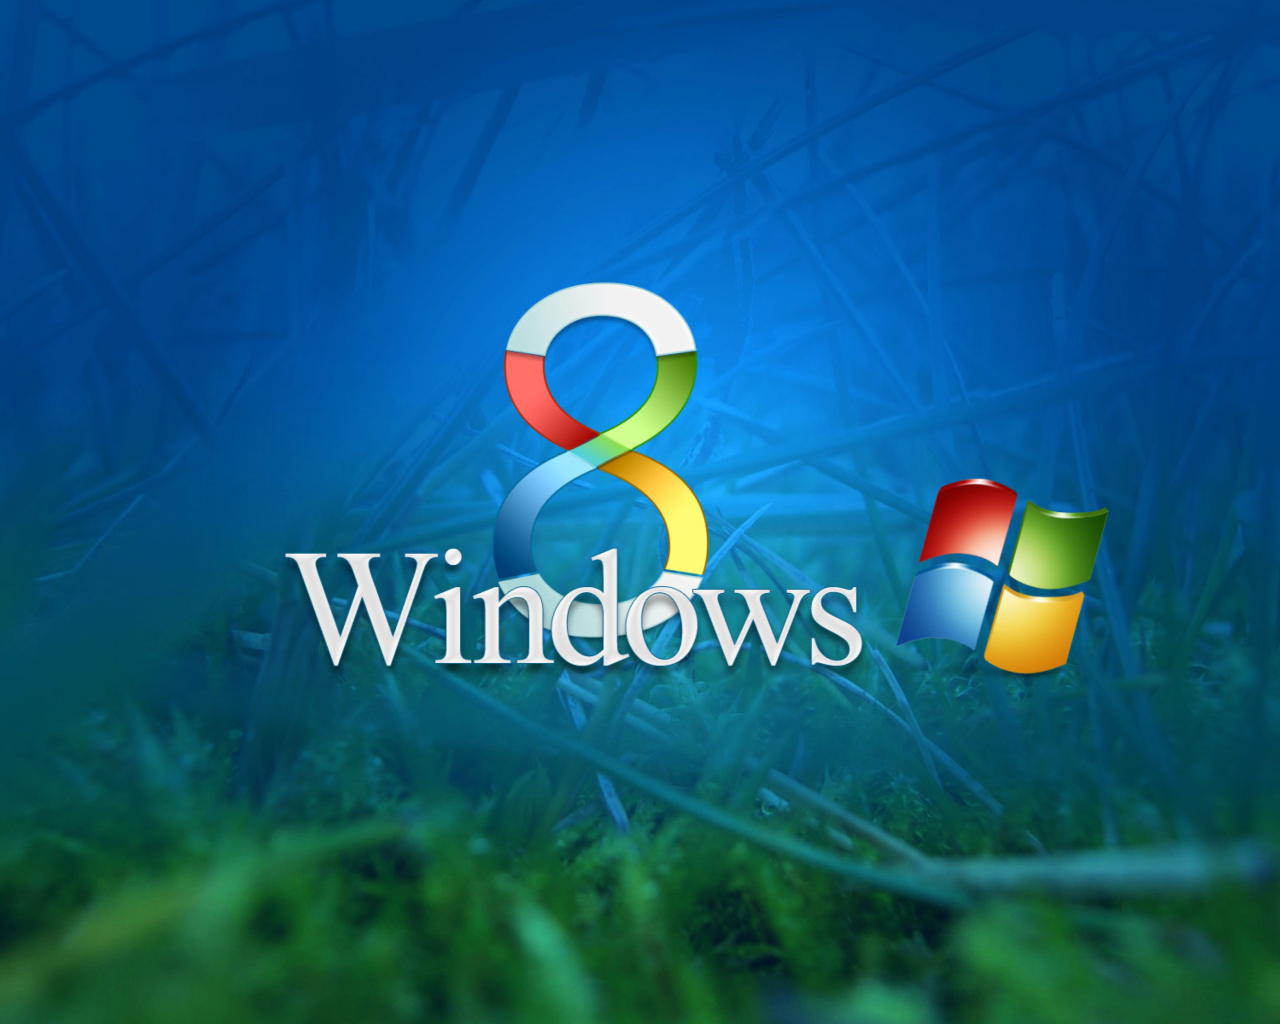 Das Windows 8 Wallpaper 1280x1024